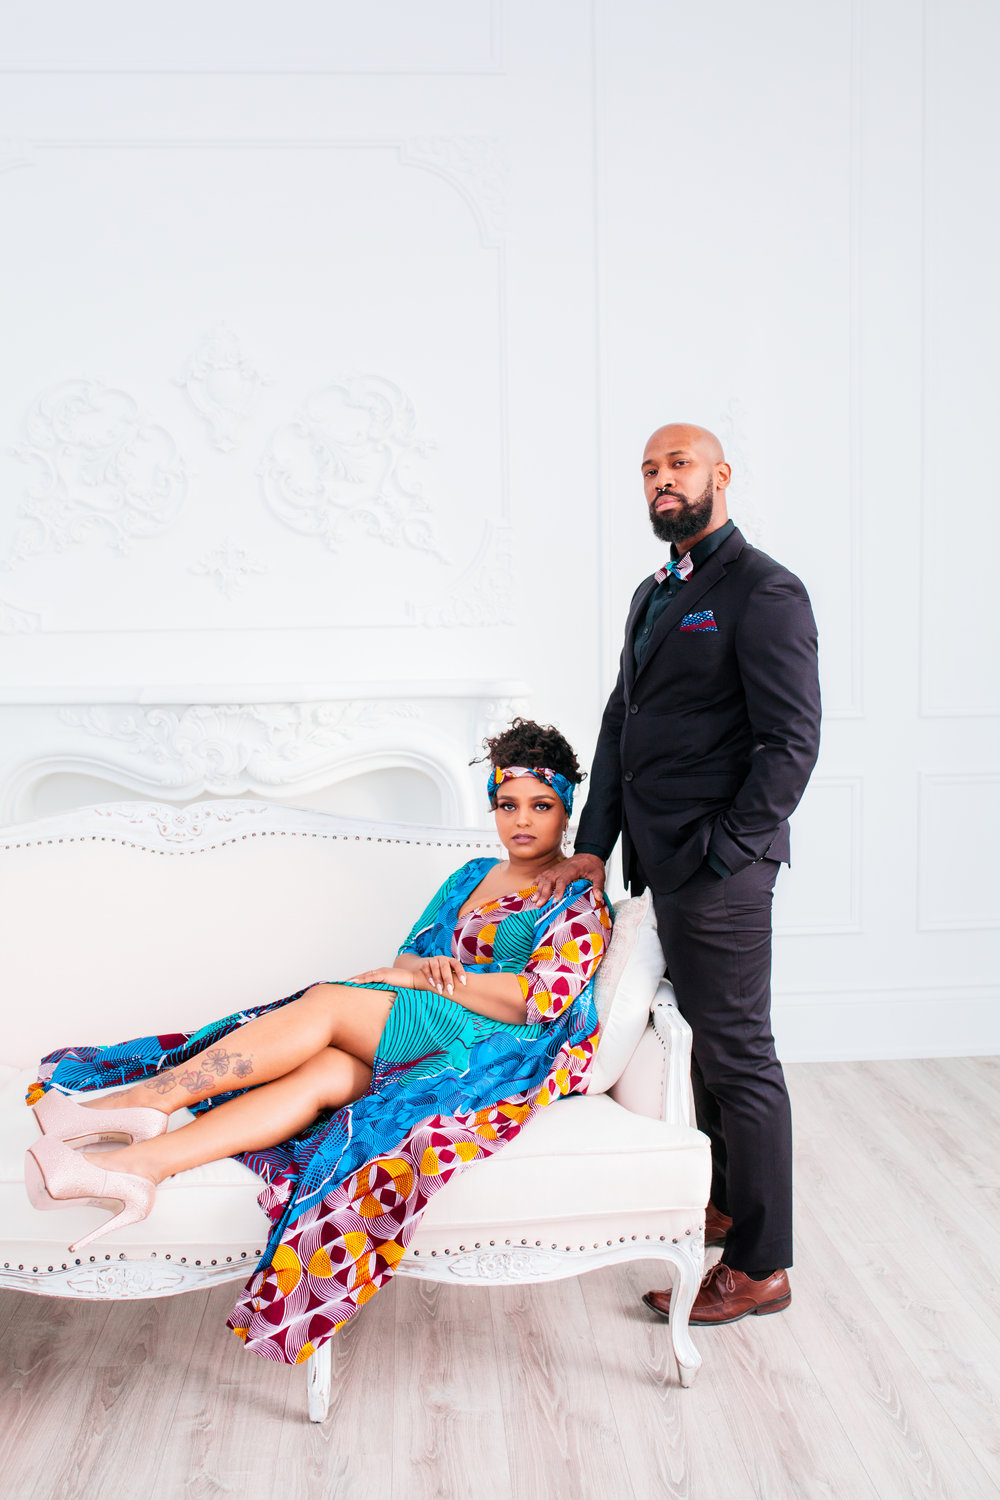 African Inspired Engagement Shoot Toronto Engagement Photographer Mint Room Studios Toronto Engagement Photography Indoors Karimah Gheddai Photography Portraits